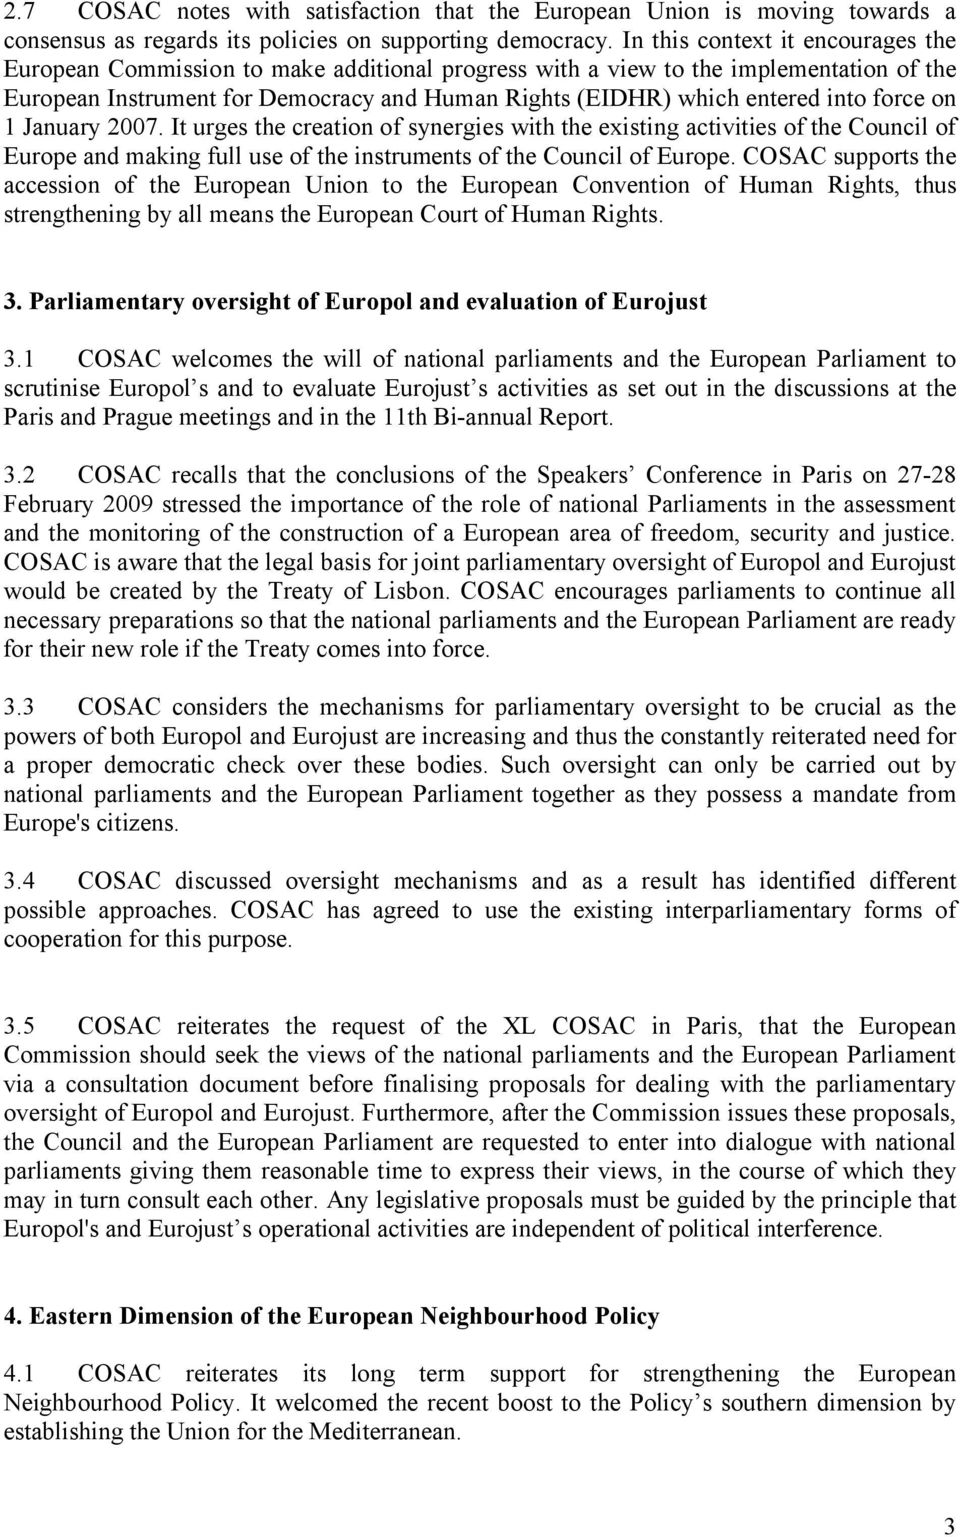 into force on 1 January 2007. It urges the creation of synergies with the existing activities of the Council of Europe and making full use of the instruments of the Council of Europe.